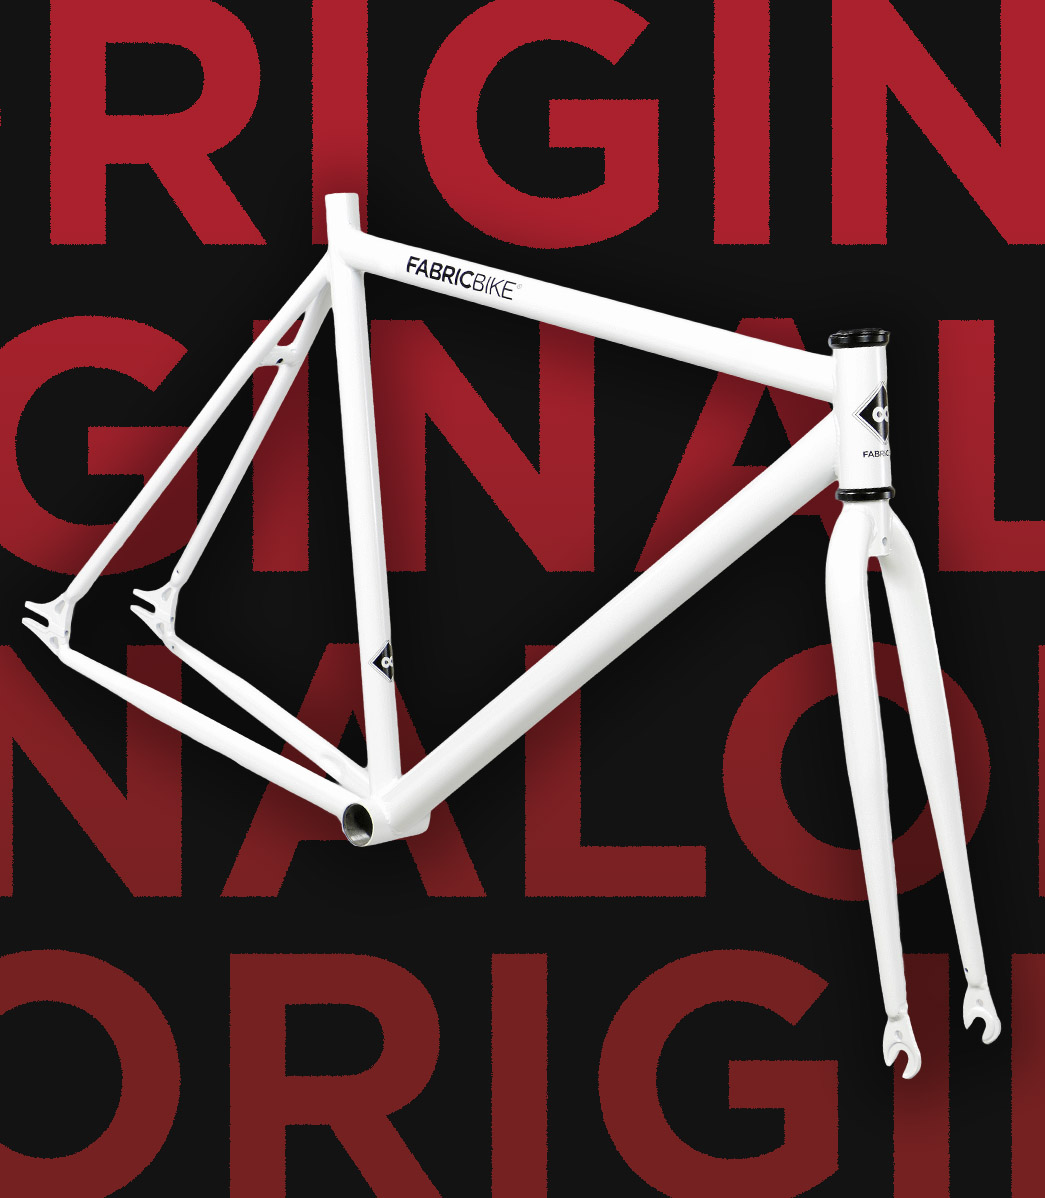 Fixie bike frameset